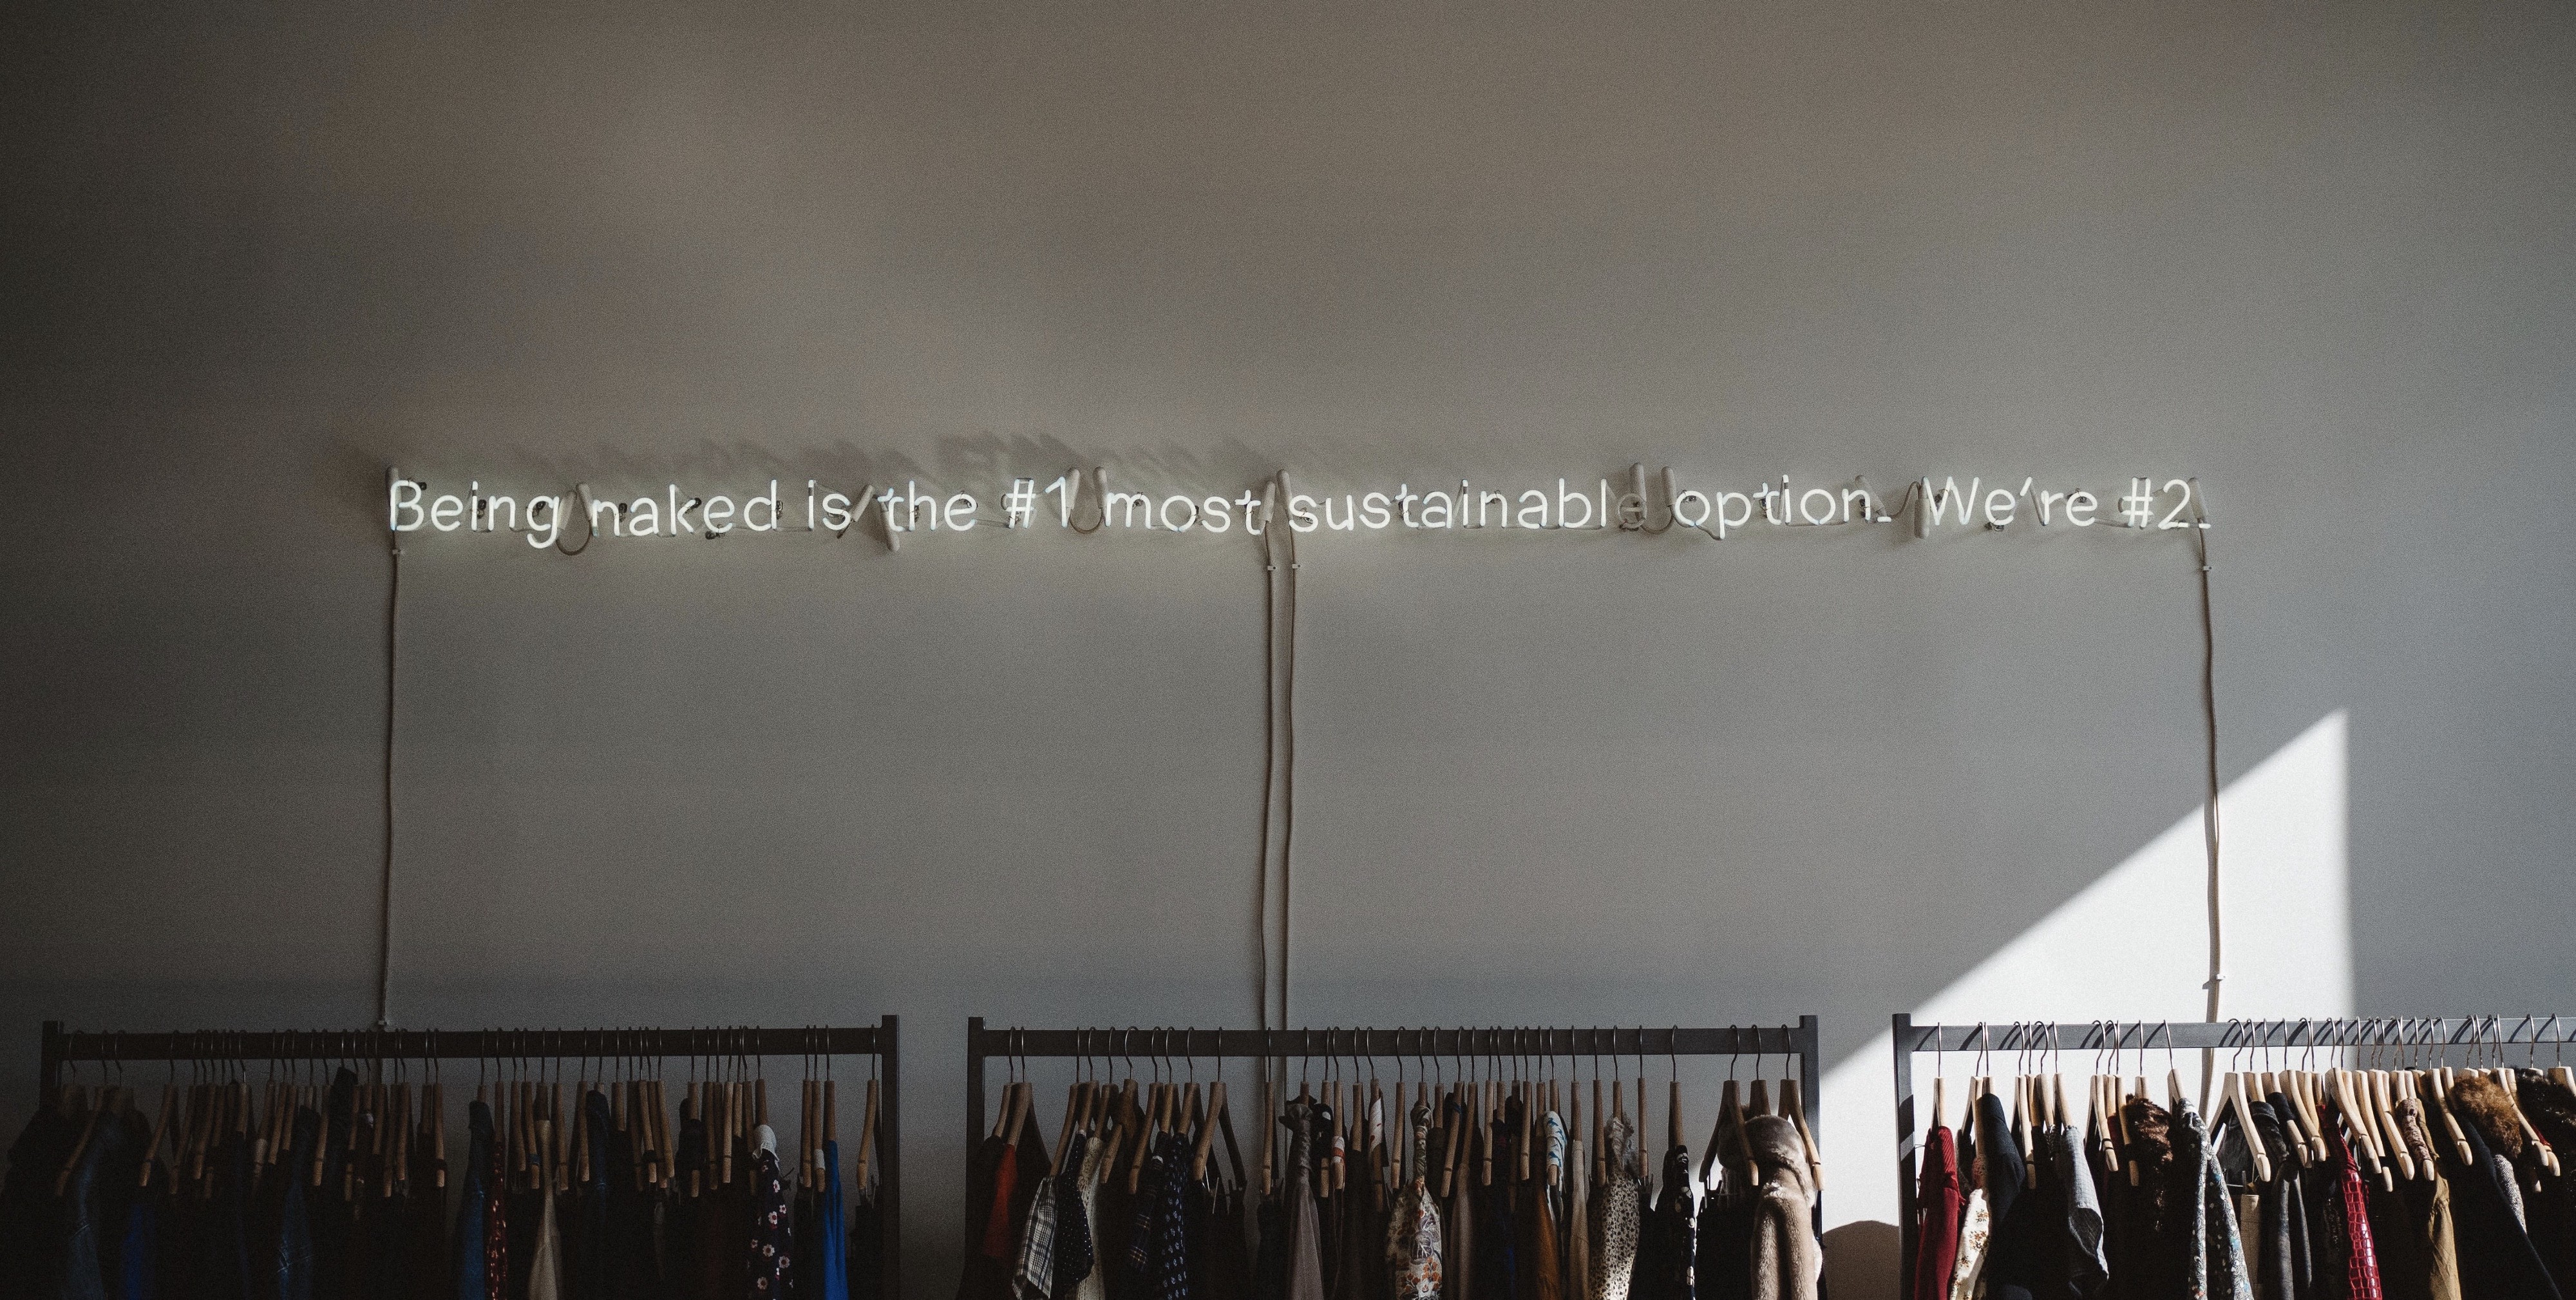 """Photo of a wall with a lit up sign that reads: """"Being naked is the #1 most sustainable option. We're #2"""" above clothing racks"""